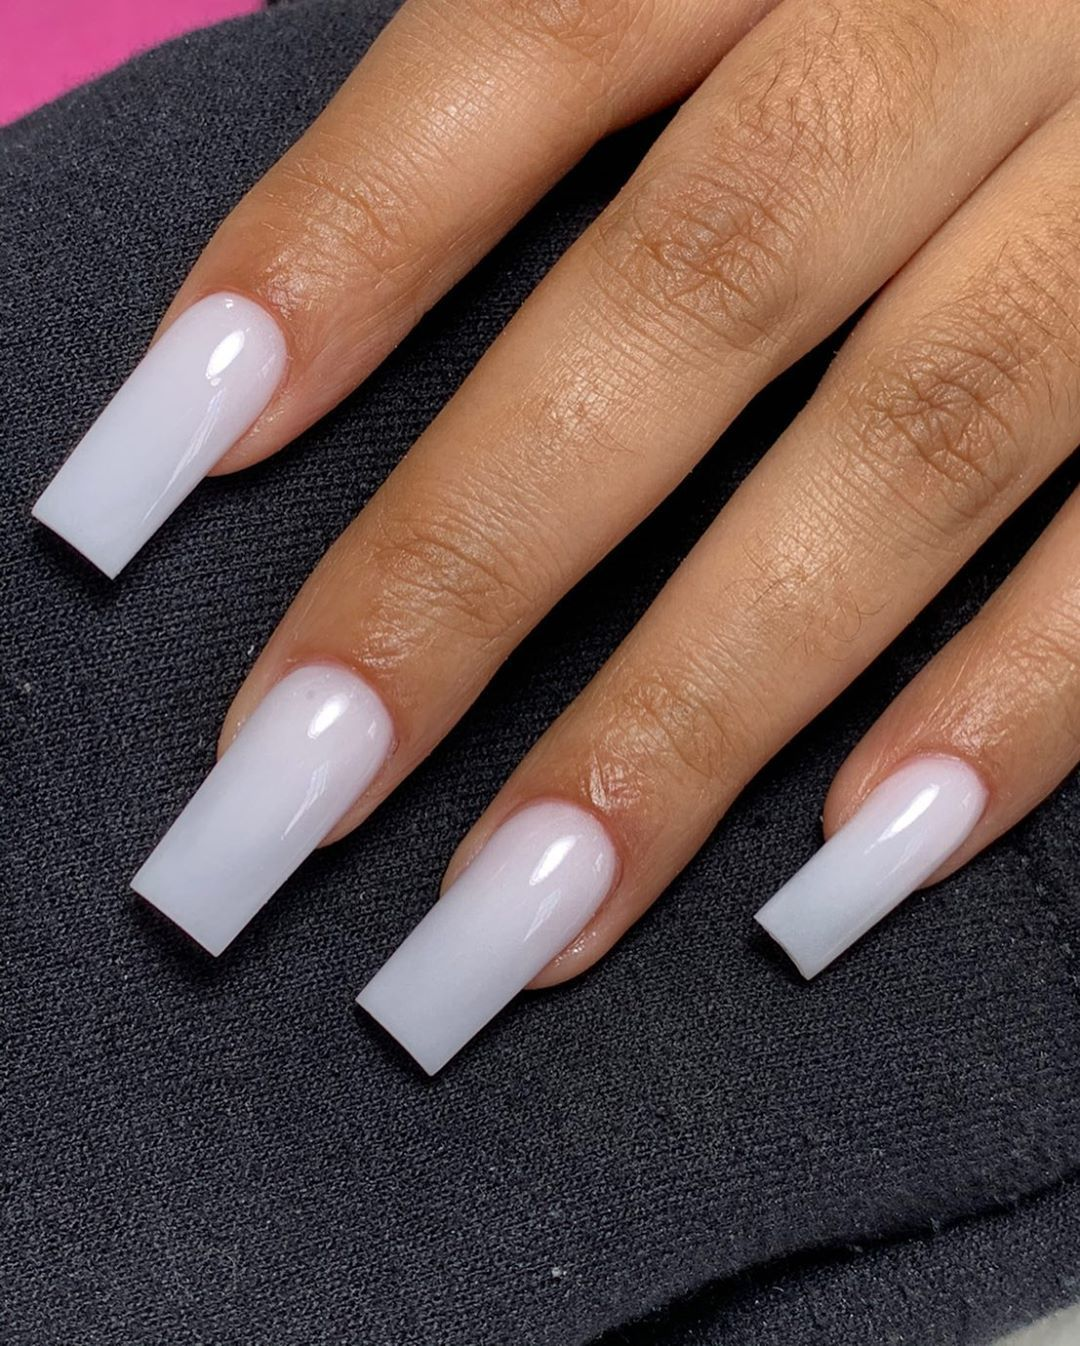 Clawed Tips In 2020 Long Square Nails Blush Nails White Acrylic Nails